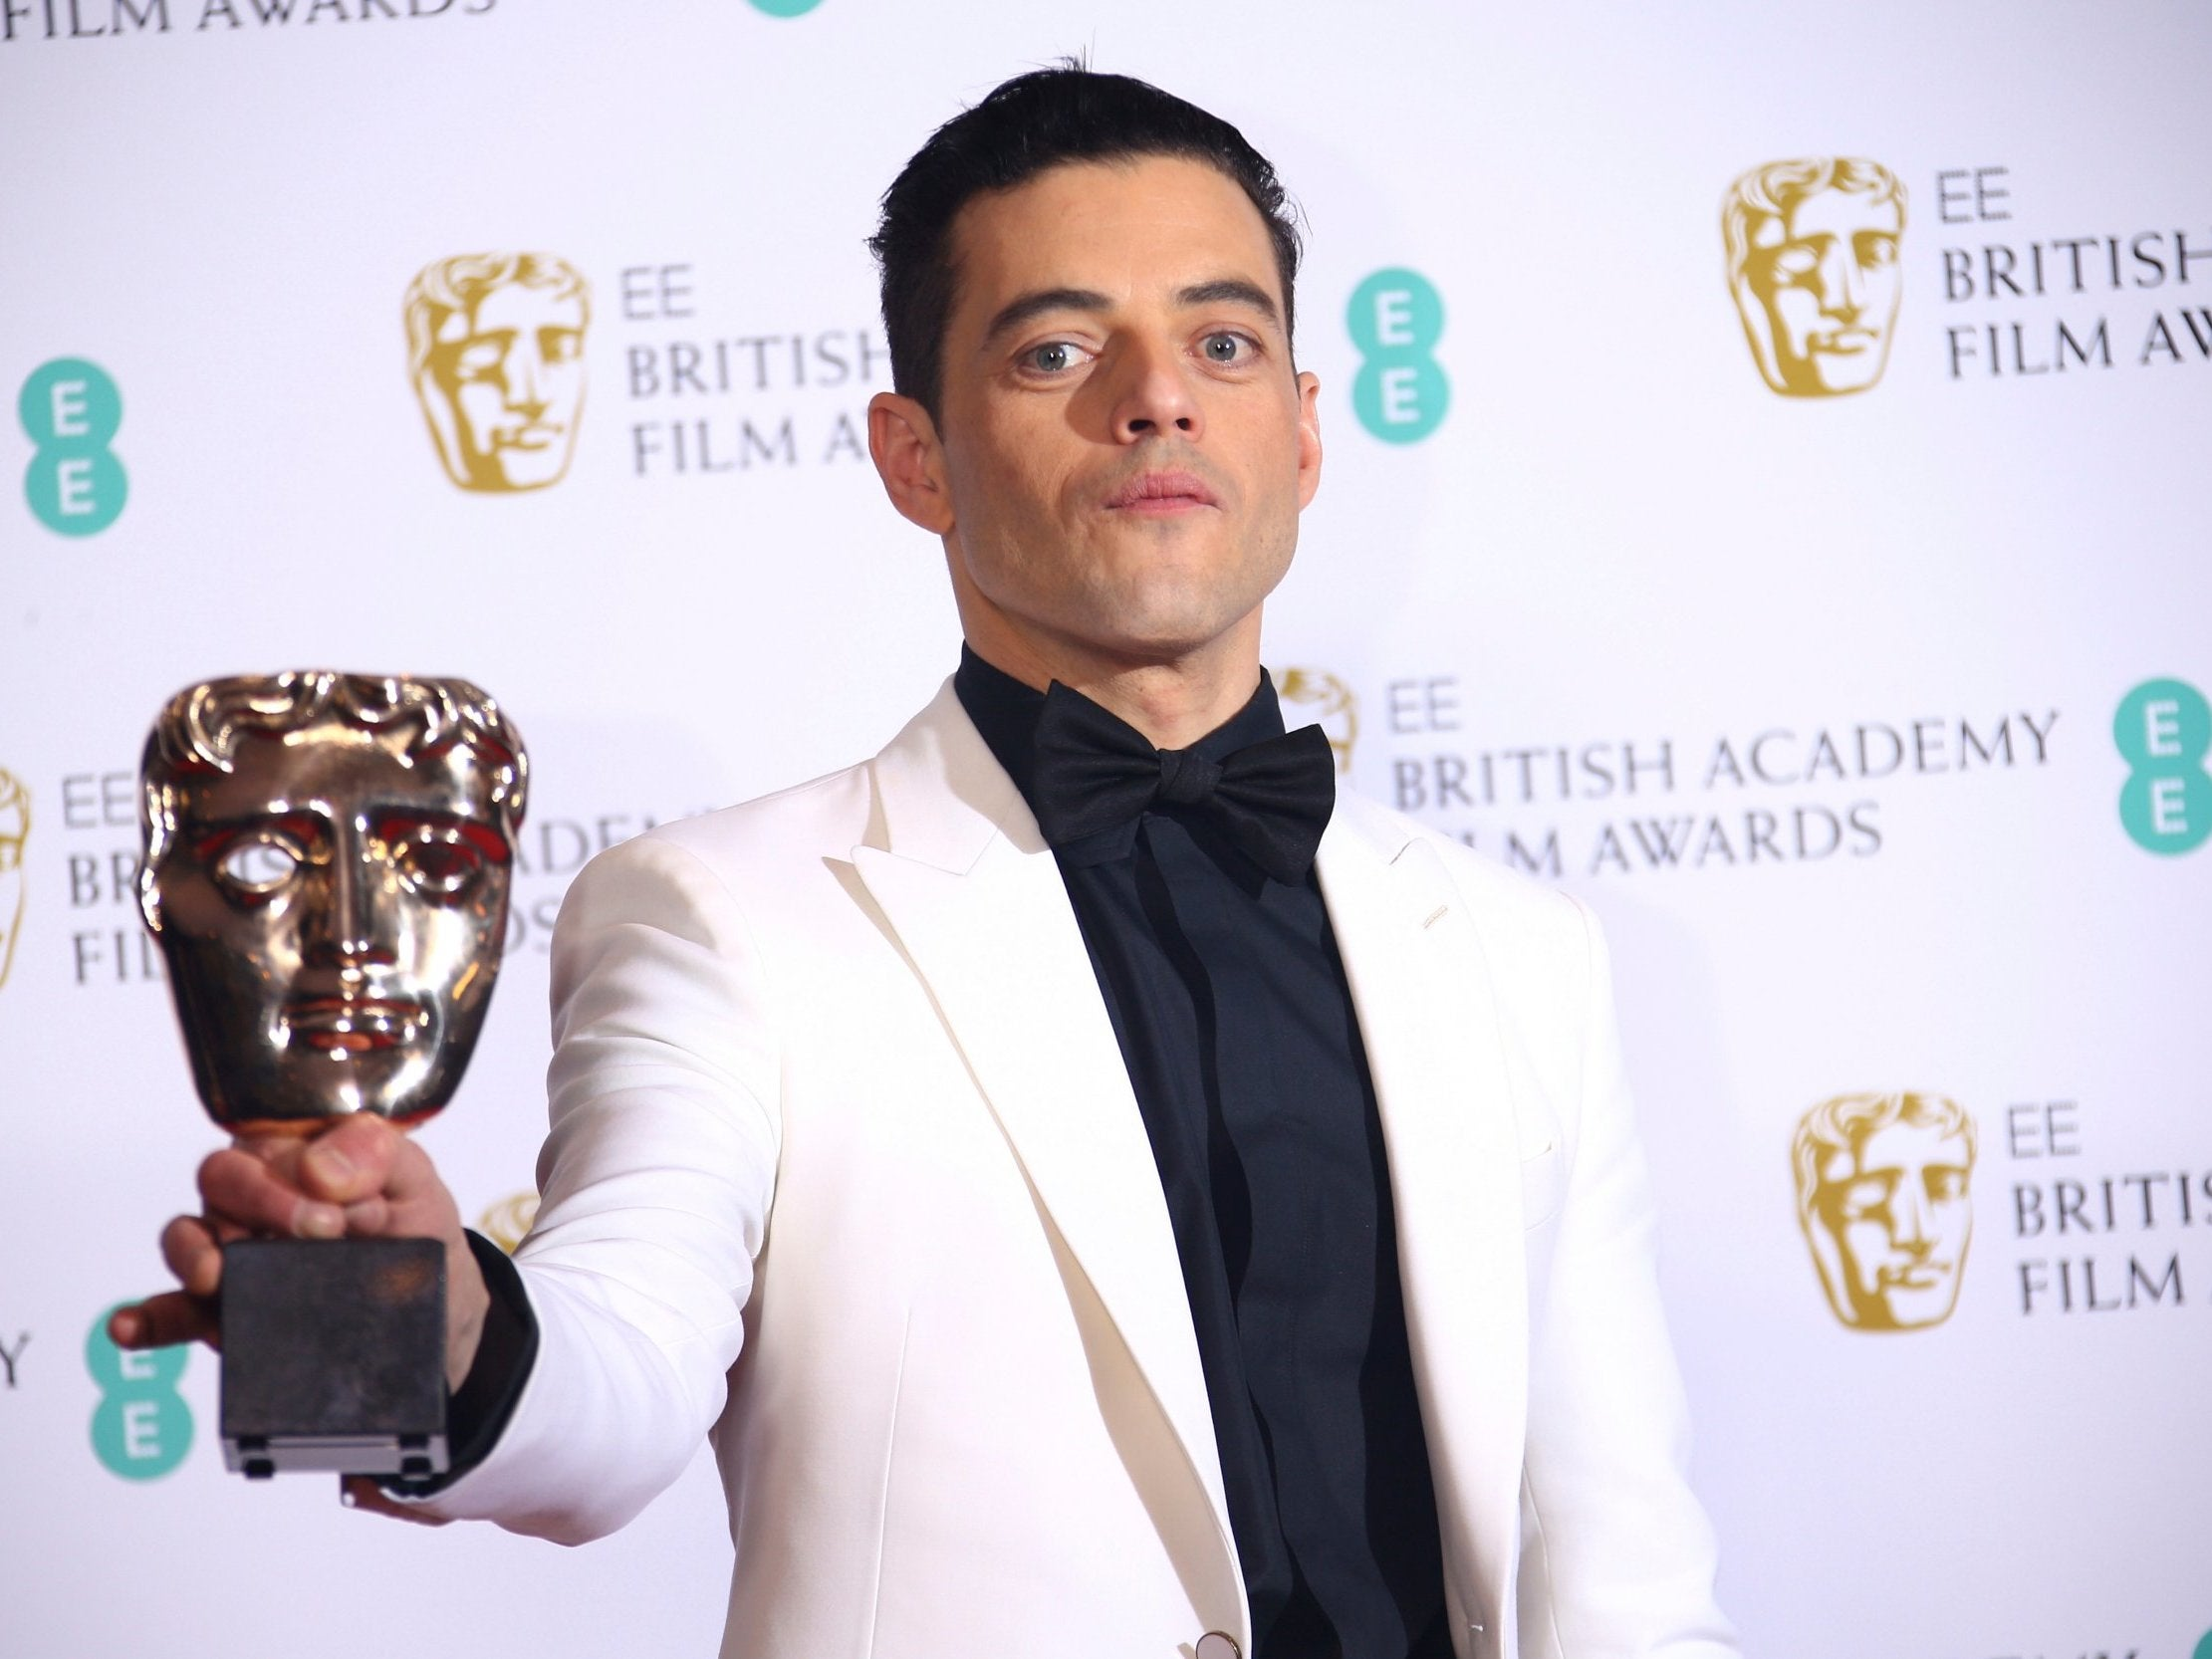 Rami Malek shares story about Freddie Mercury on Bafta red carpet: 'I don't know if Bob Geldof will kill me for this'